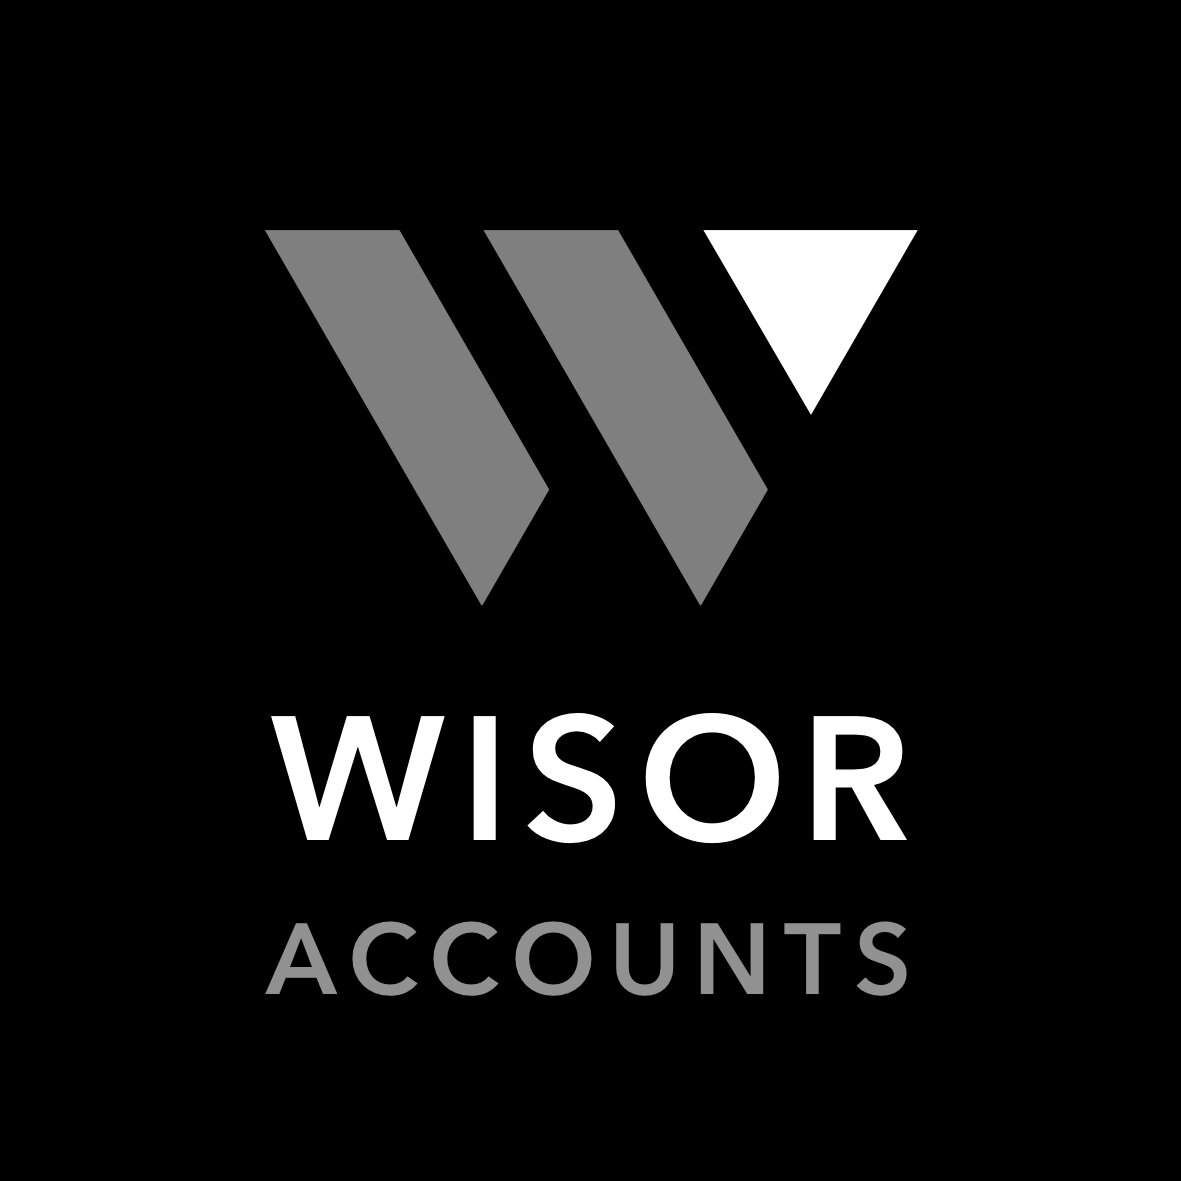 Wisor Accounts Logo.jpg  For download click on image.